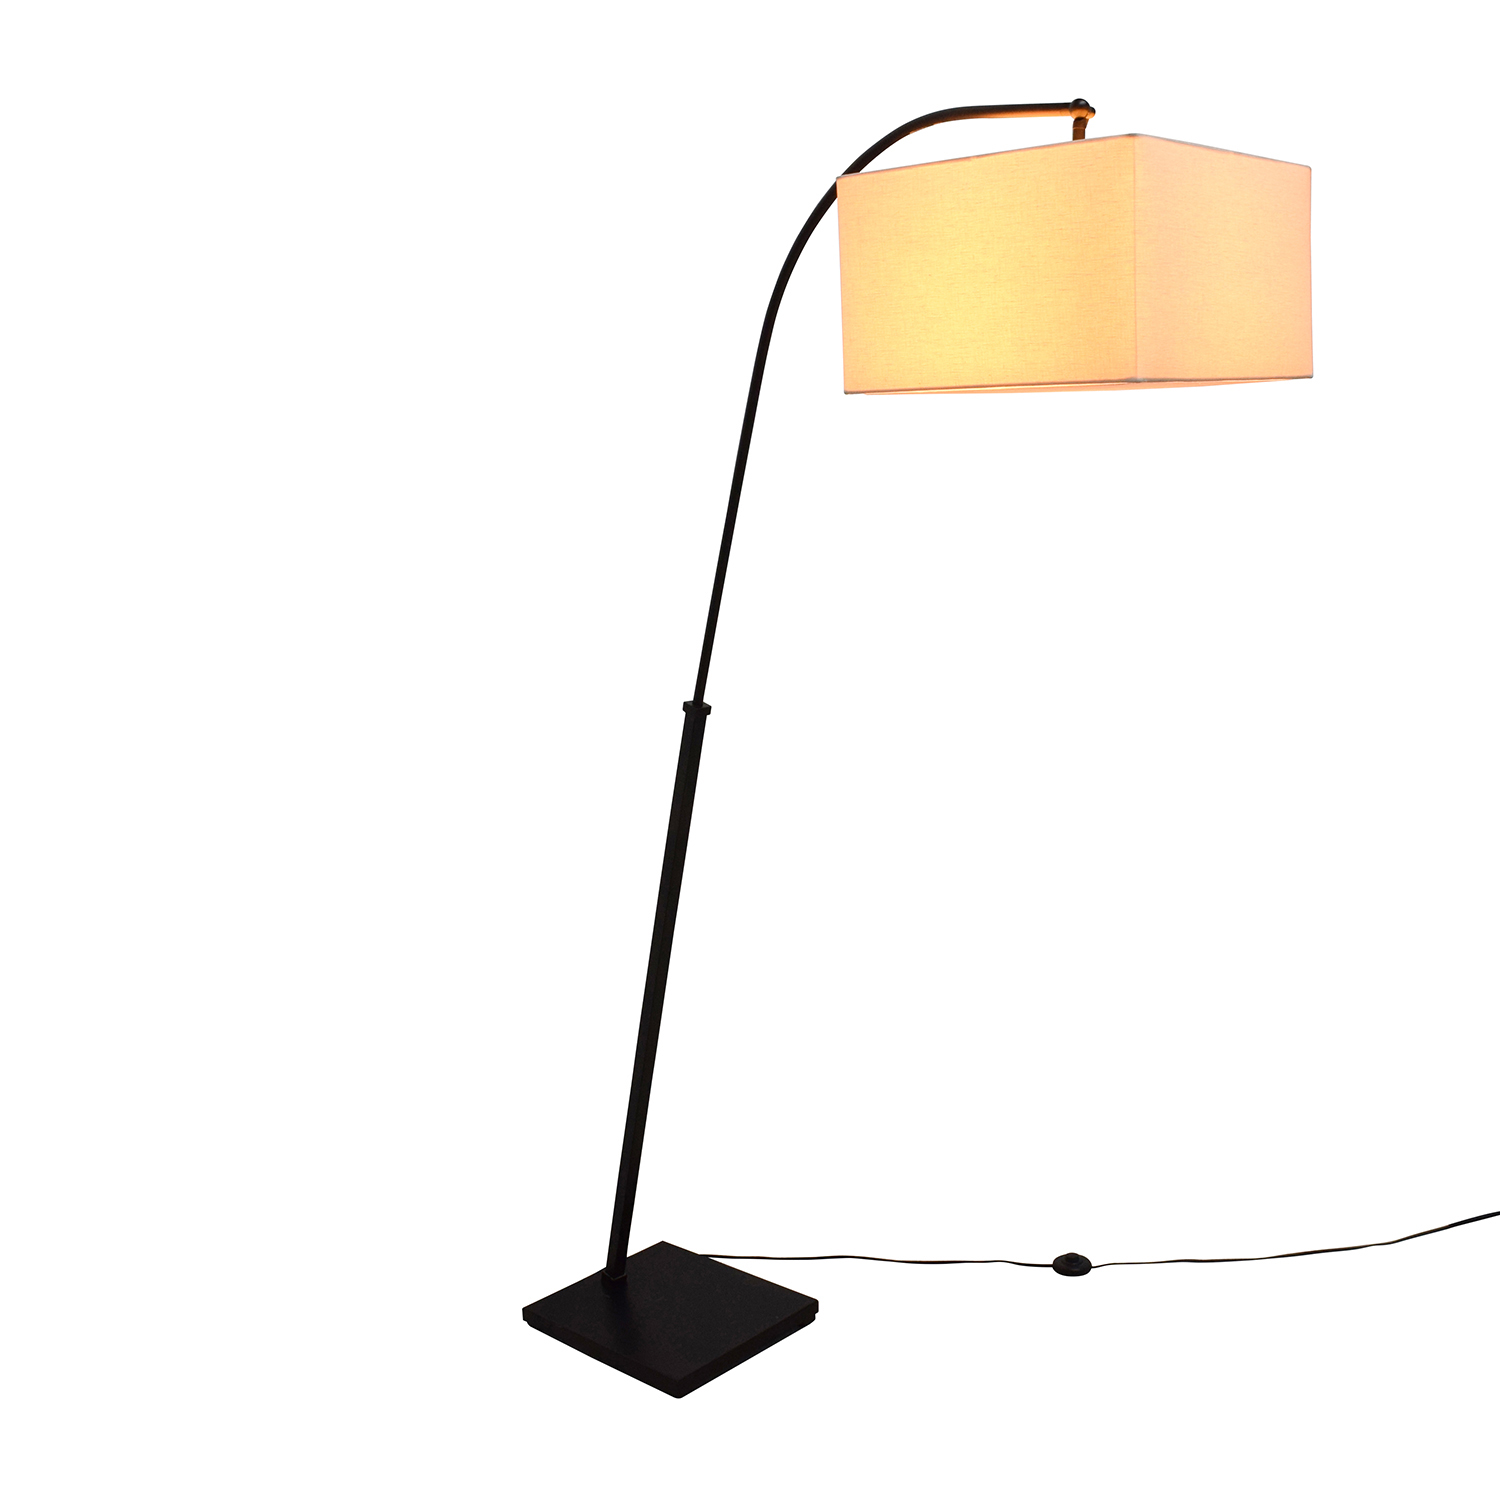 ... Crate And Barrel Crate U0026 Barrel Dexter Arc Floor Lamp Black And Beige  ...